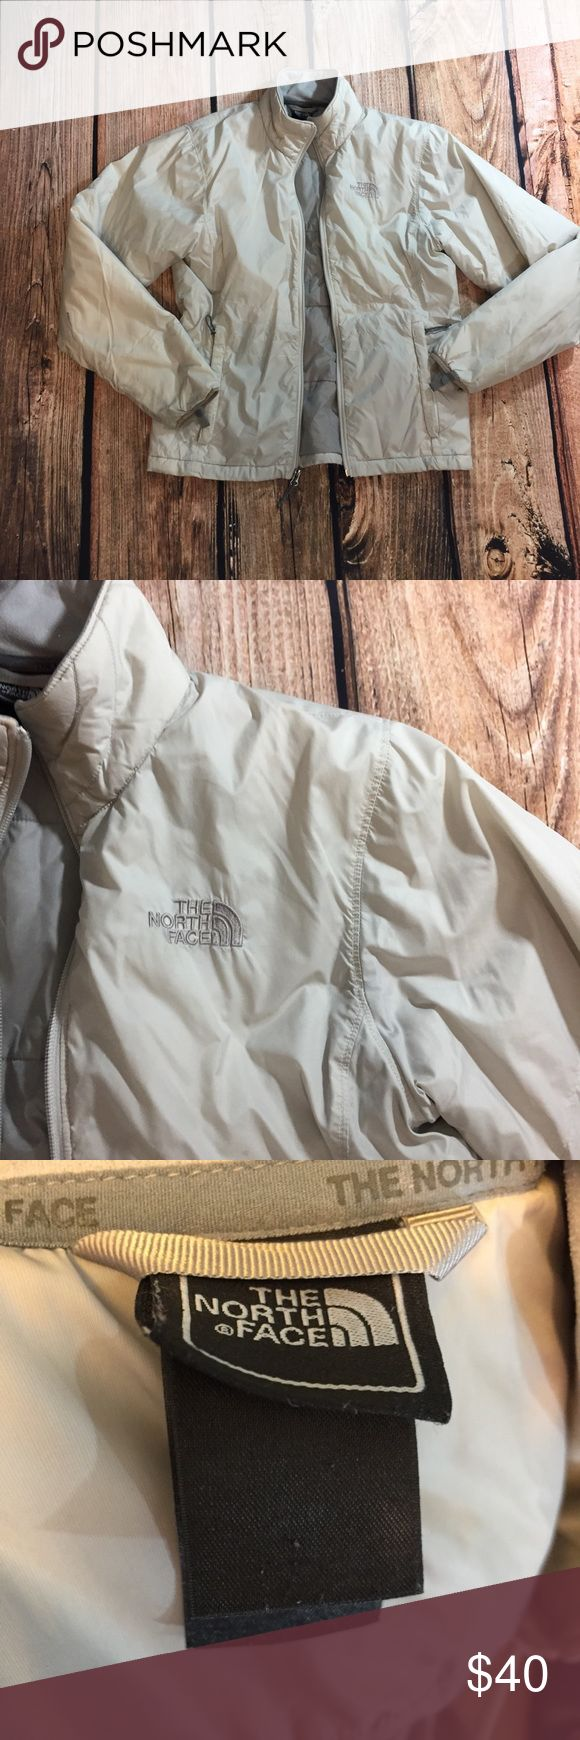 {The North Face} cream & gray coat The North Face Beige/cream colored with gray jacket. Lightweight down filled. Warm and cute jacket. Little mark on the sleeve shown in photos. Size small. Good condition. The North Face Jackets & Coats Puffers